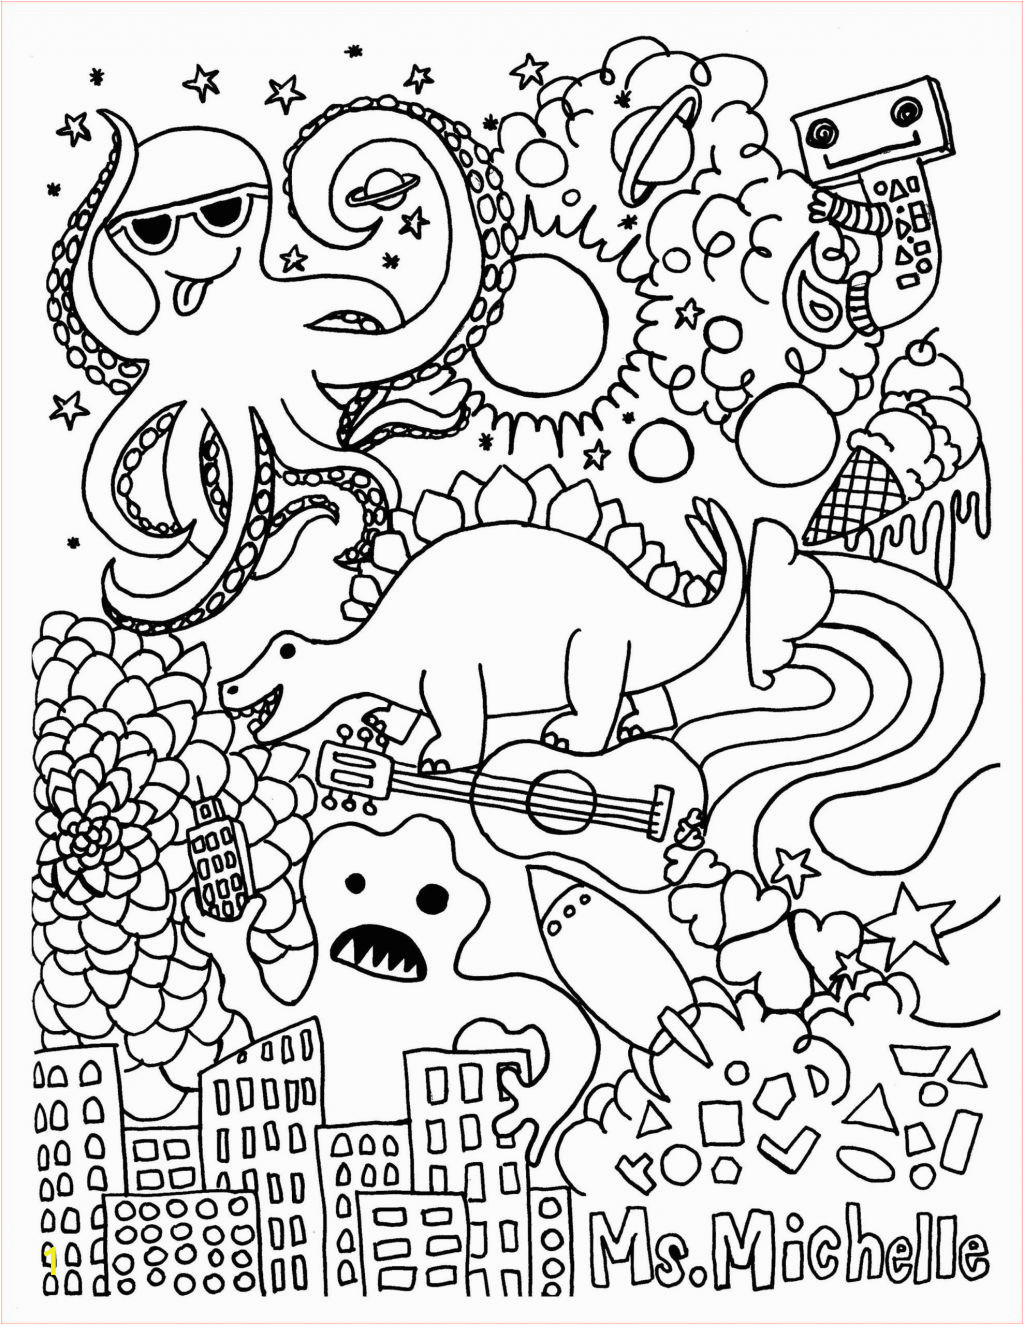 Interactive Coloring Pages for Adults Coloring Pages Interactive Coloring Pages for Adults